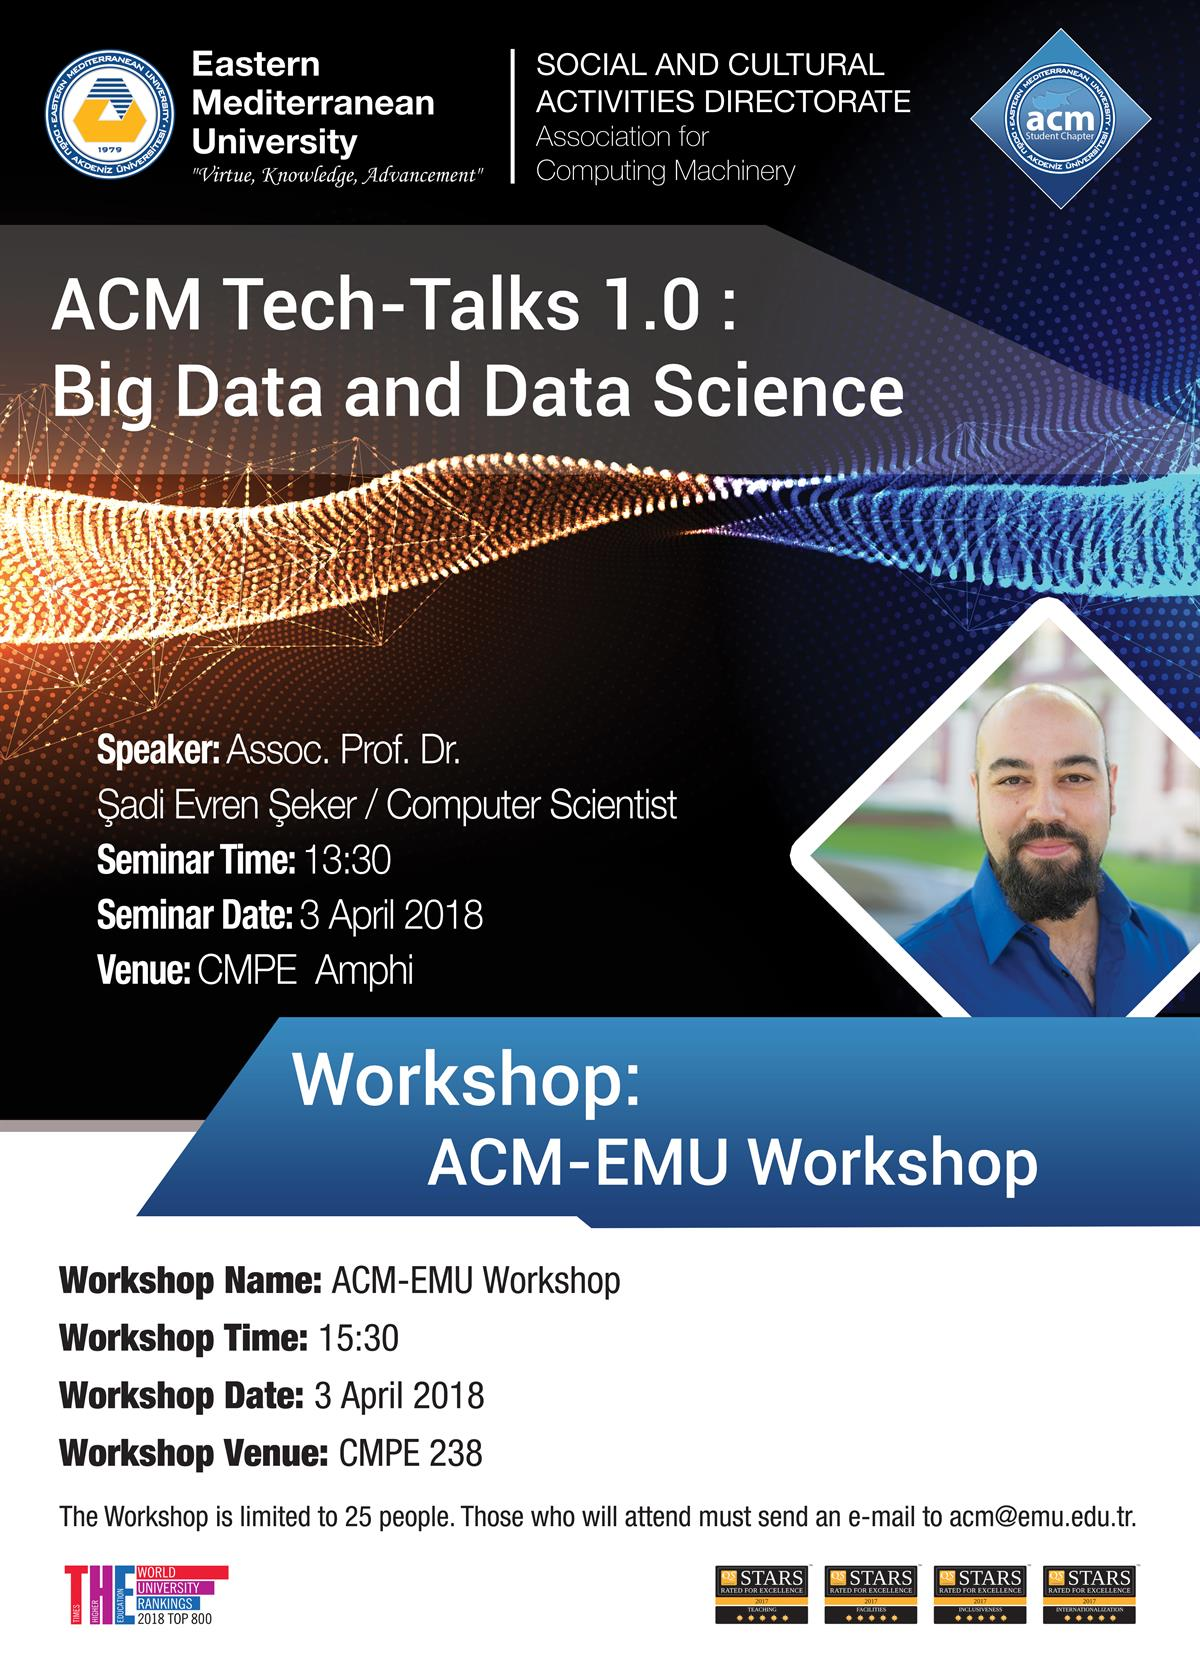 ACM-EMU Workshop